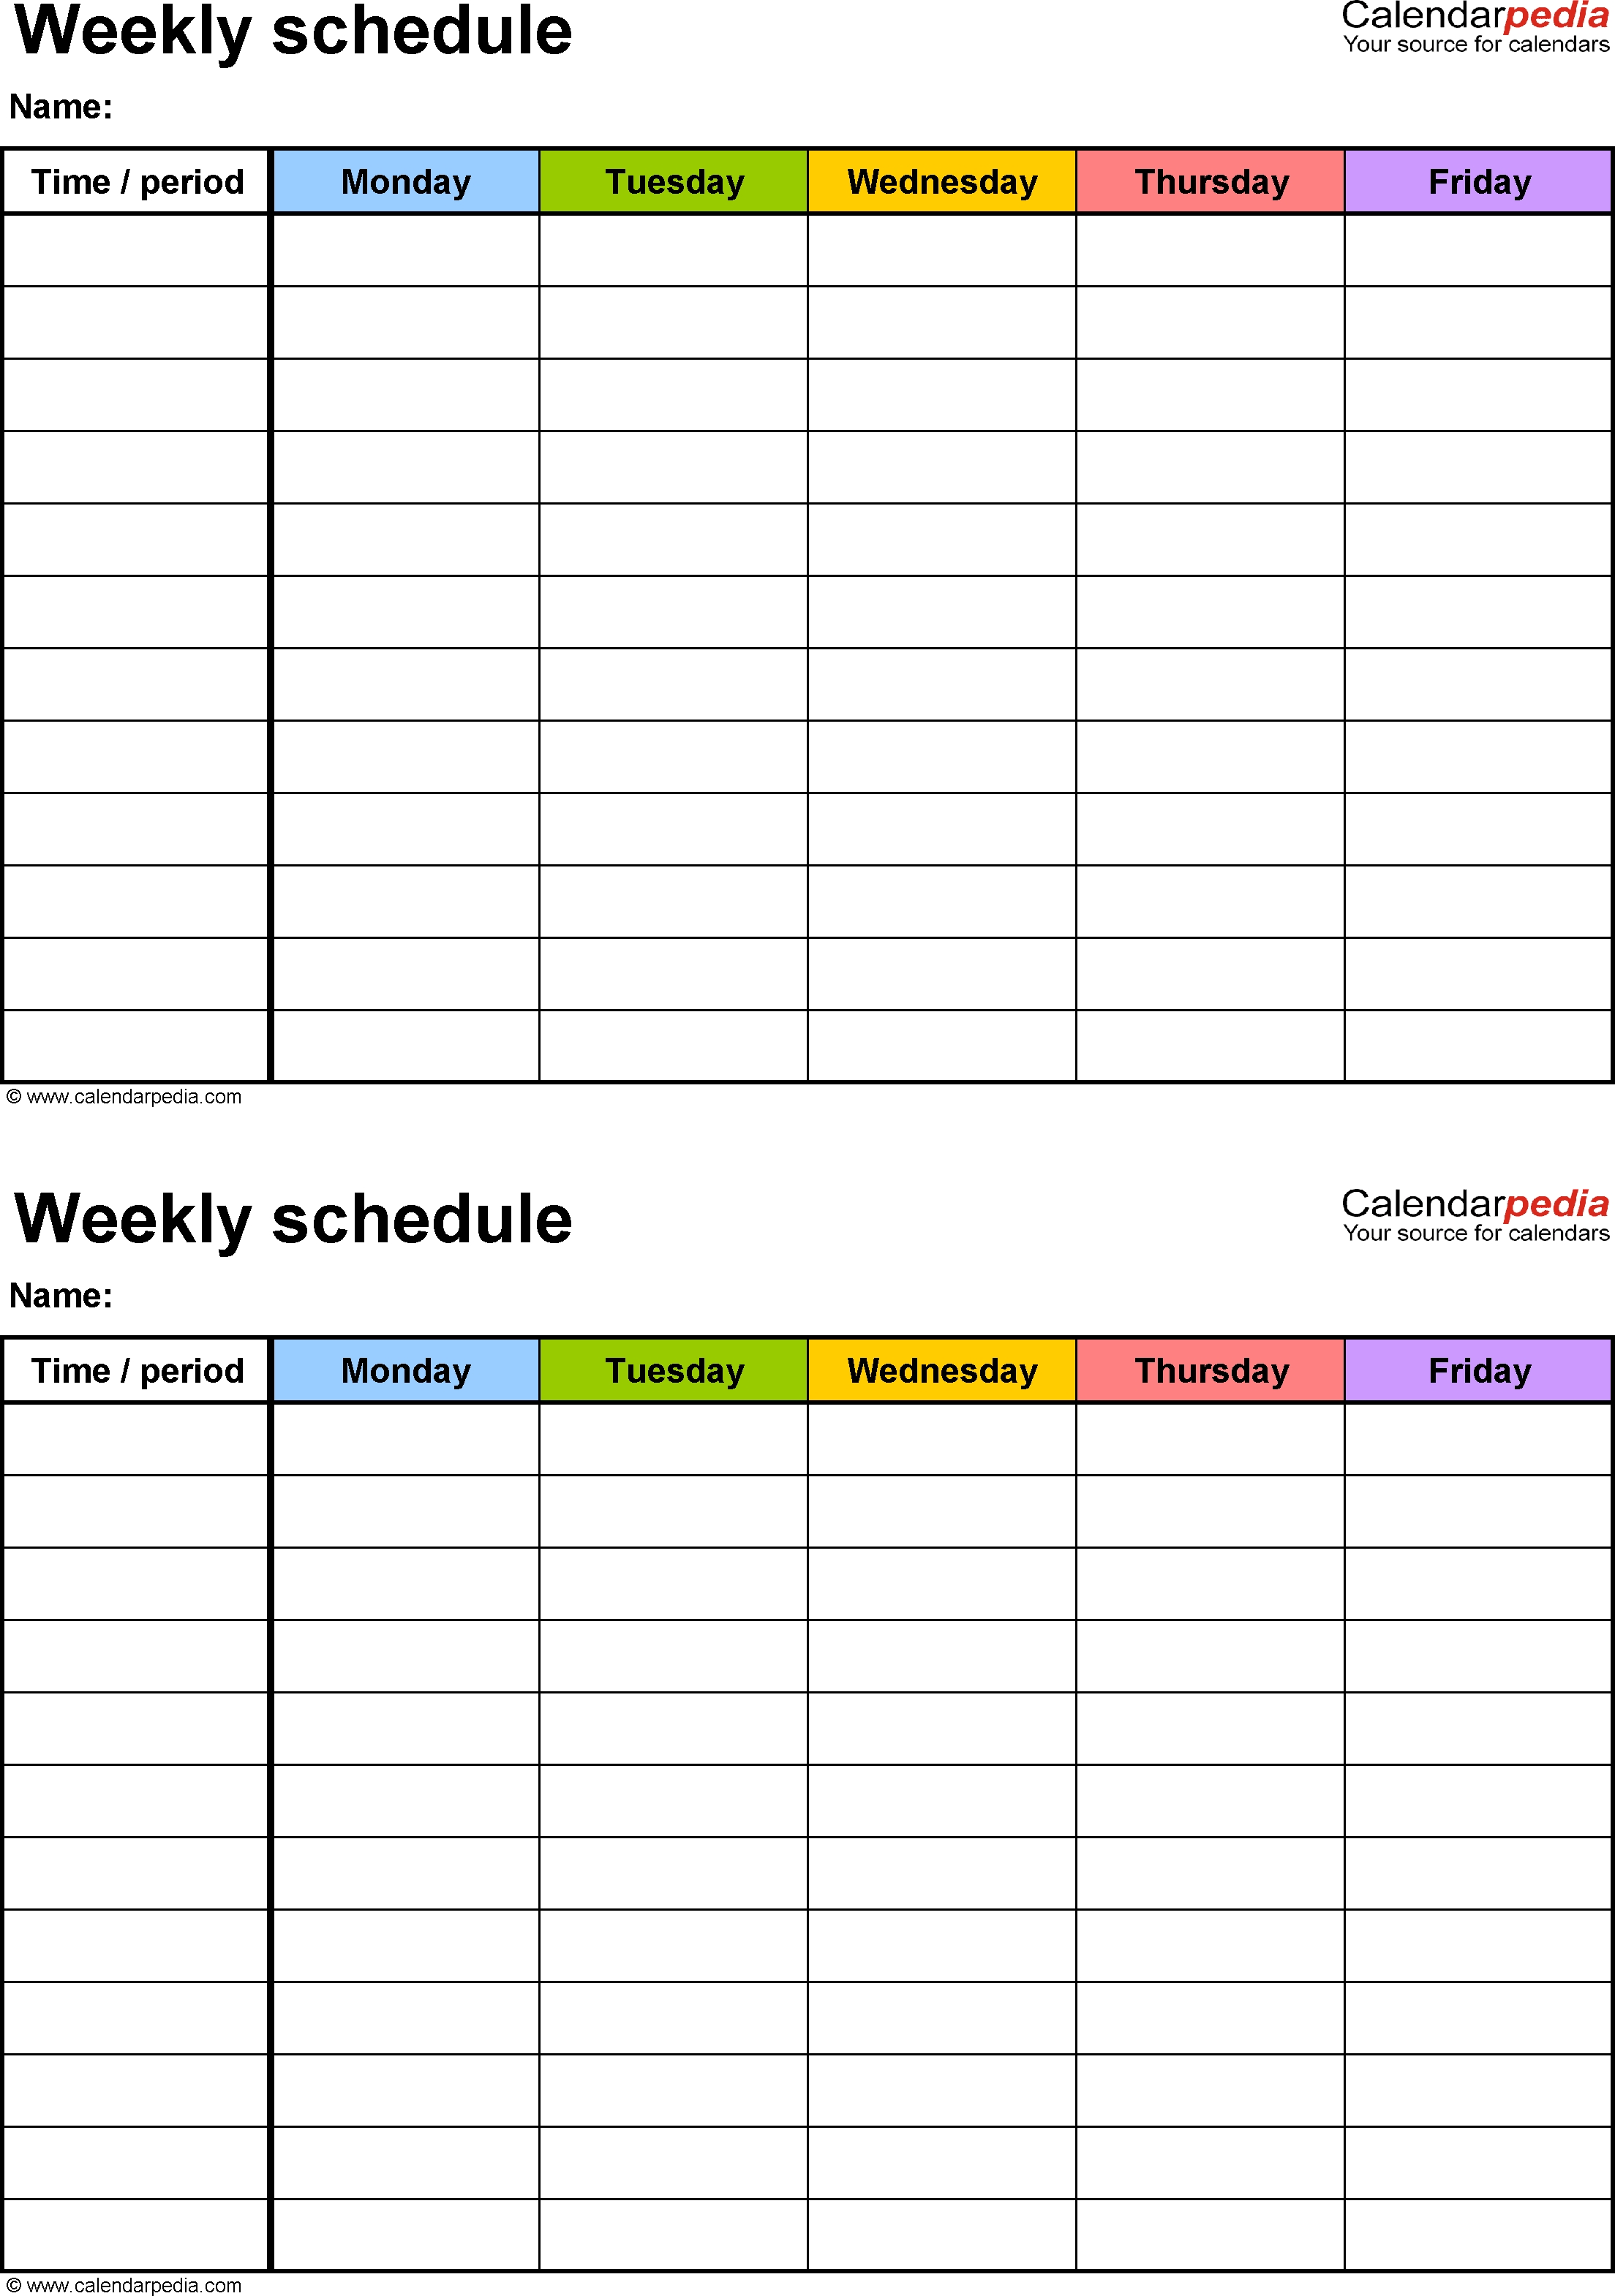 Free Weekly Schedule Templates For Excel - 18 Templates_9 Week Blank Calendar